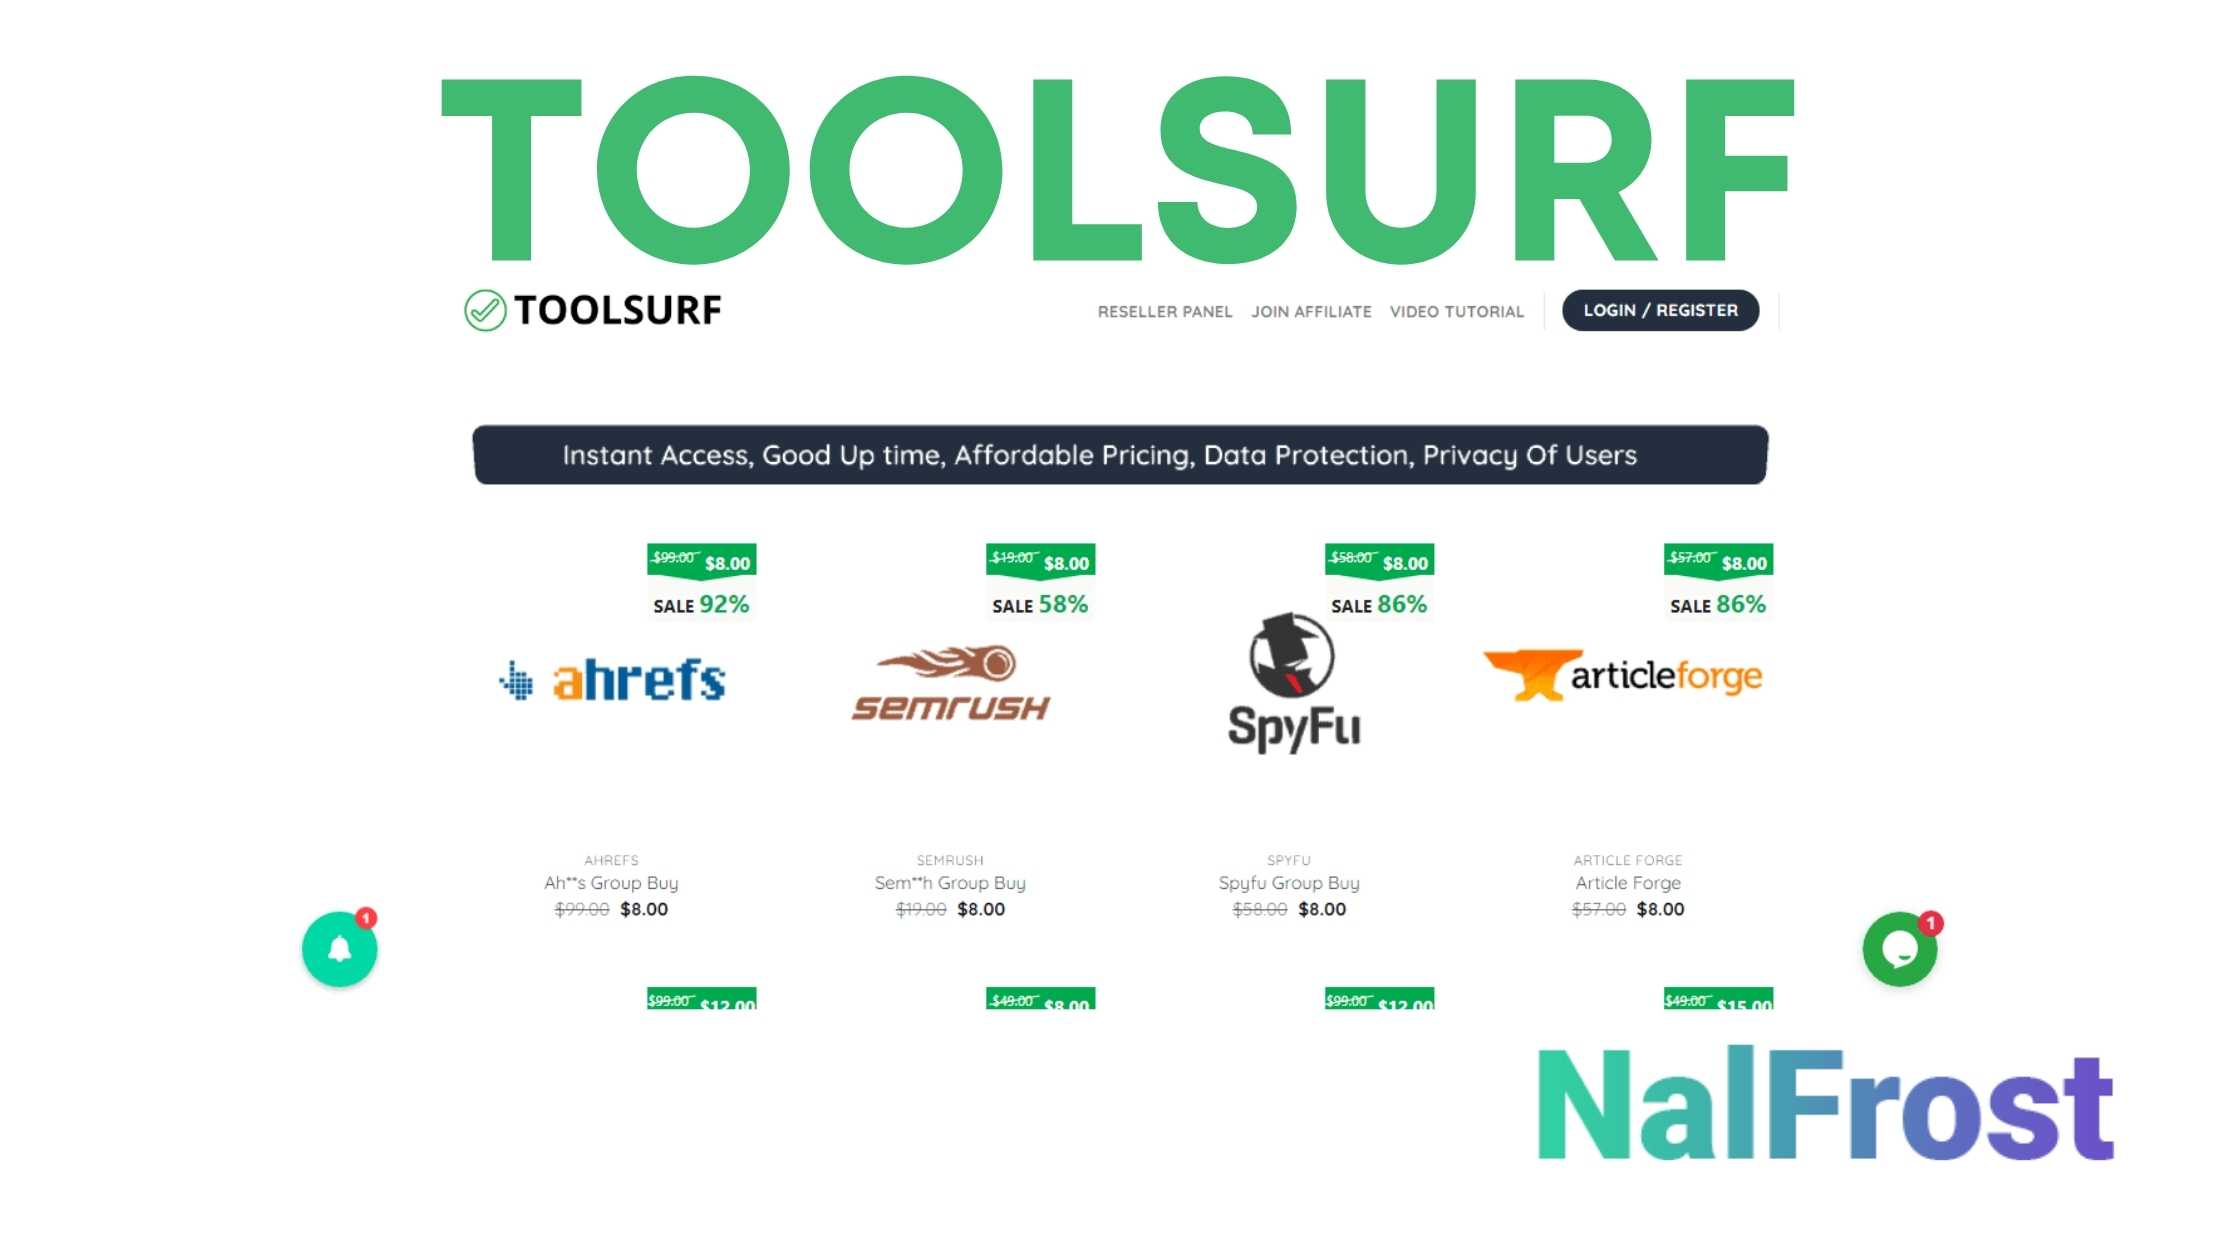 Toolsurf Review